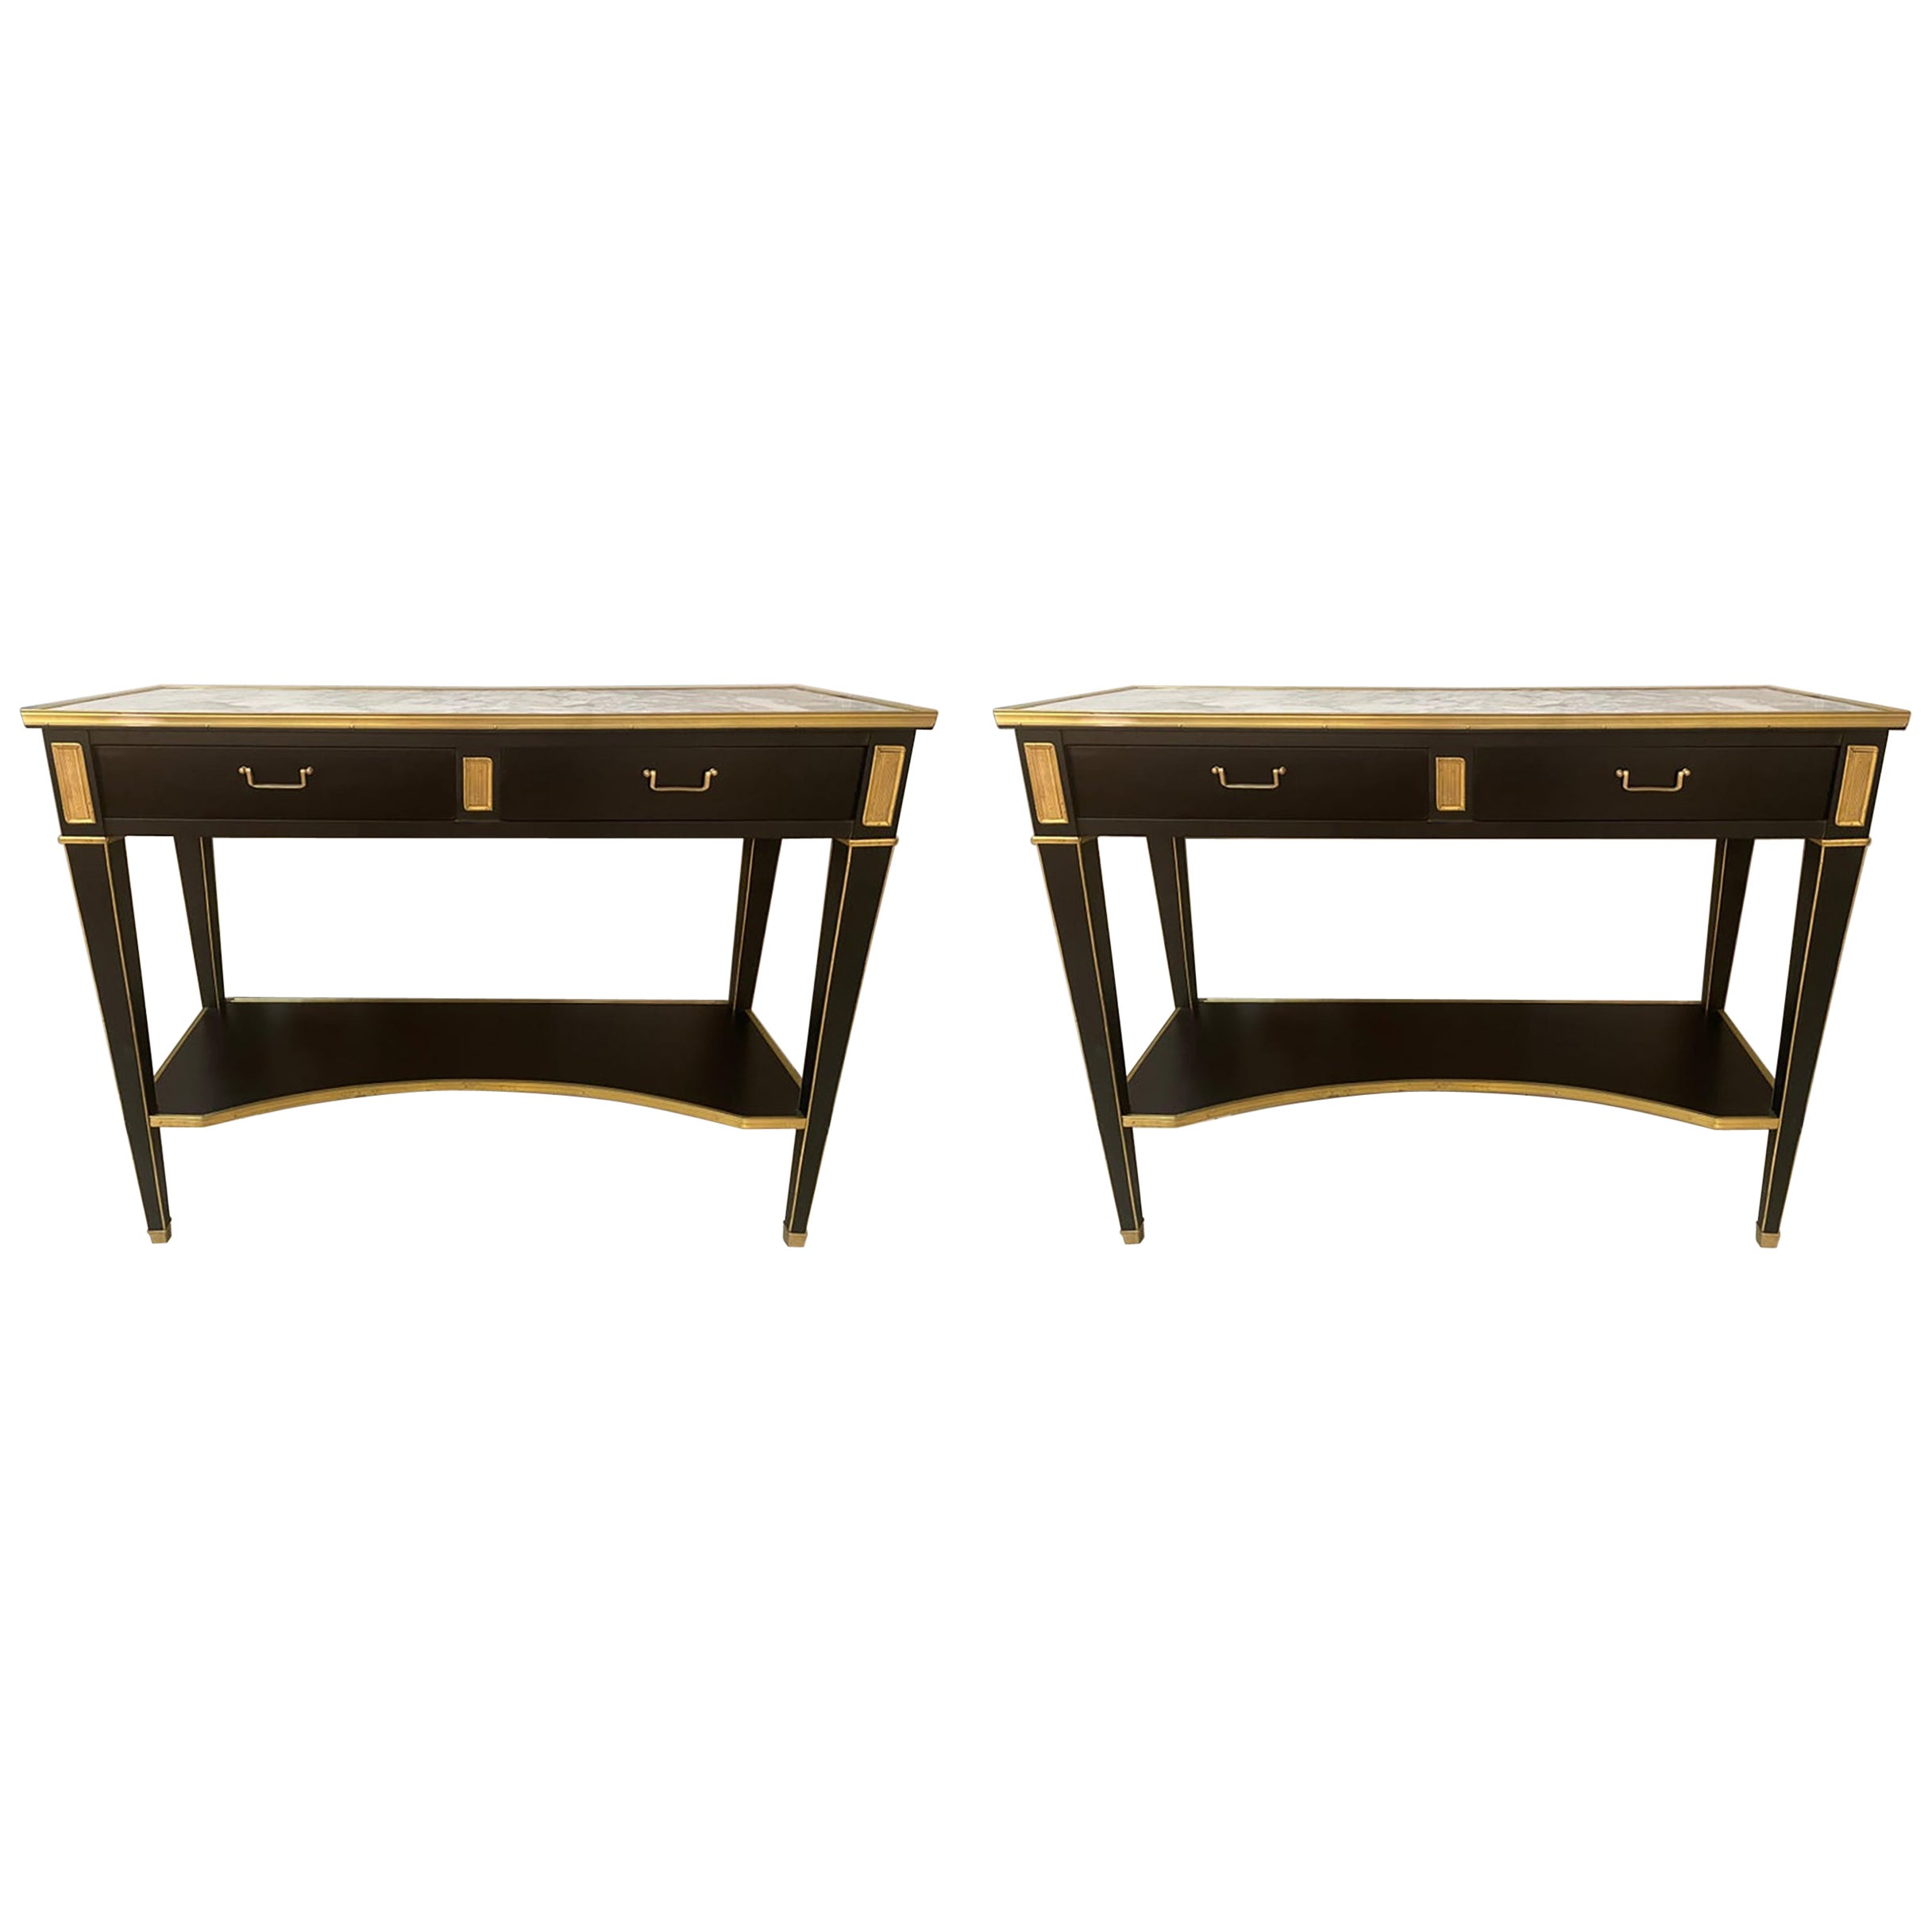 Pair of Hollywood Regency Neoclassical Ebony Console Tables Manner Jansen